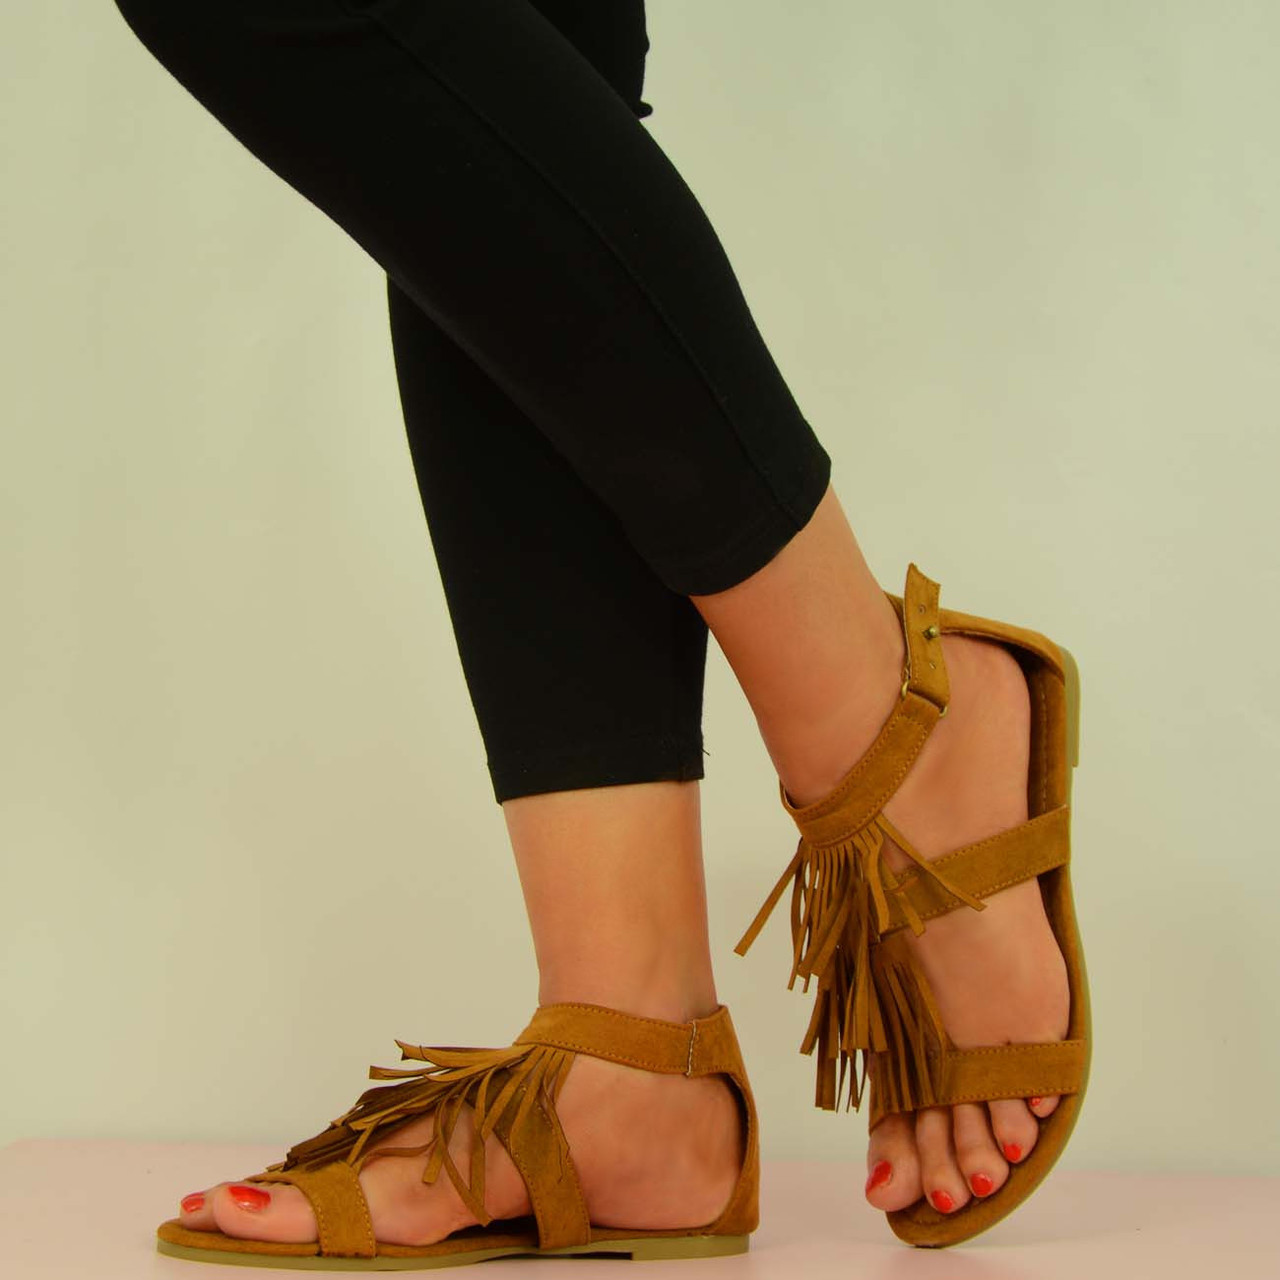 NEW WOMENS SUMMER FLAT SANDALS LADIES TAN SUEDE FRINGE SHOES SIZE UK 3 3.5  4 5 6 6.8 7 8